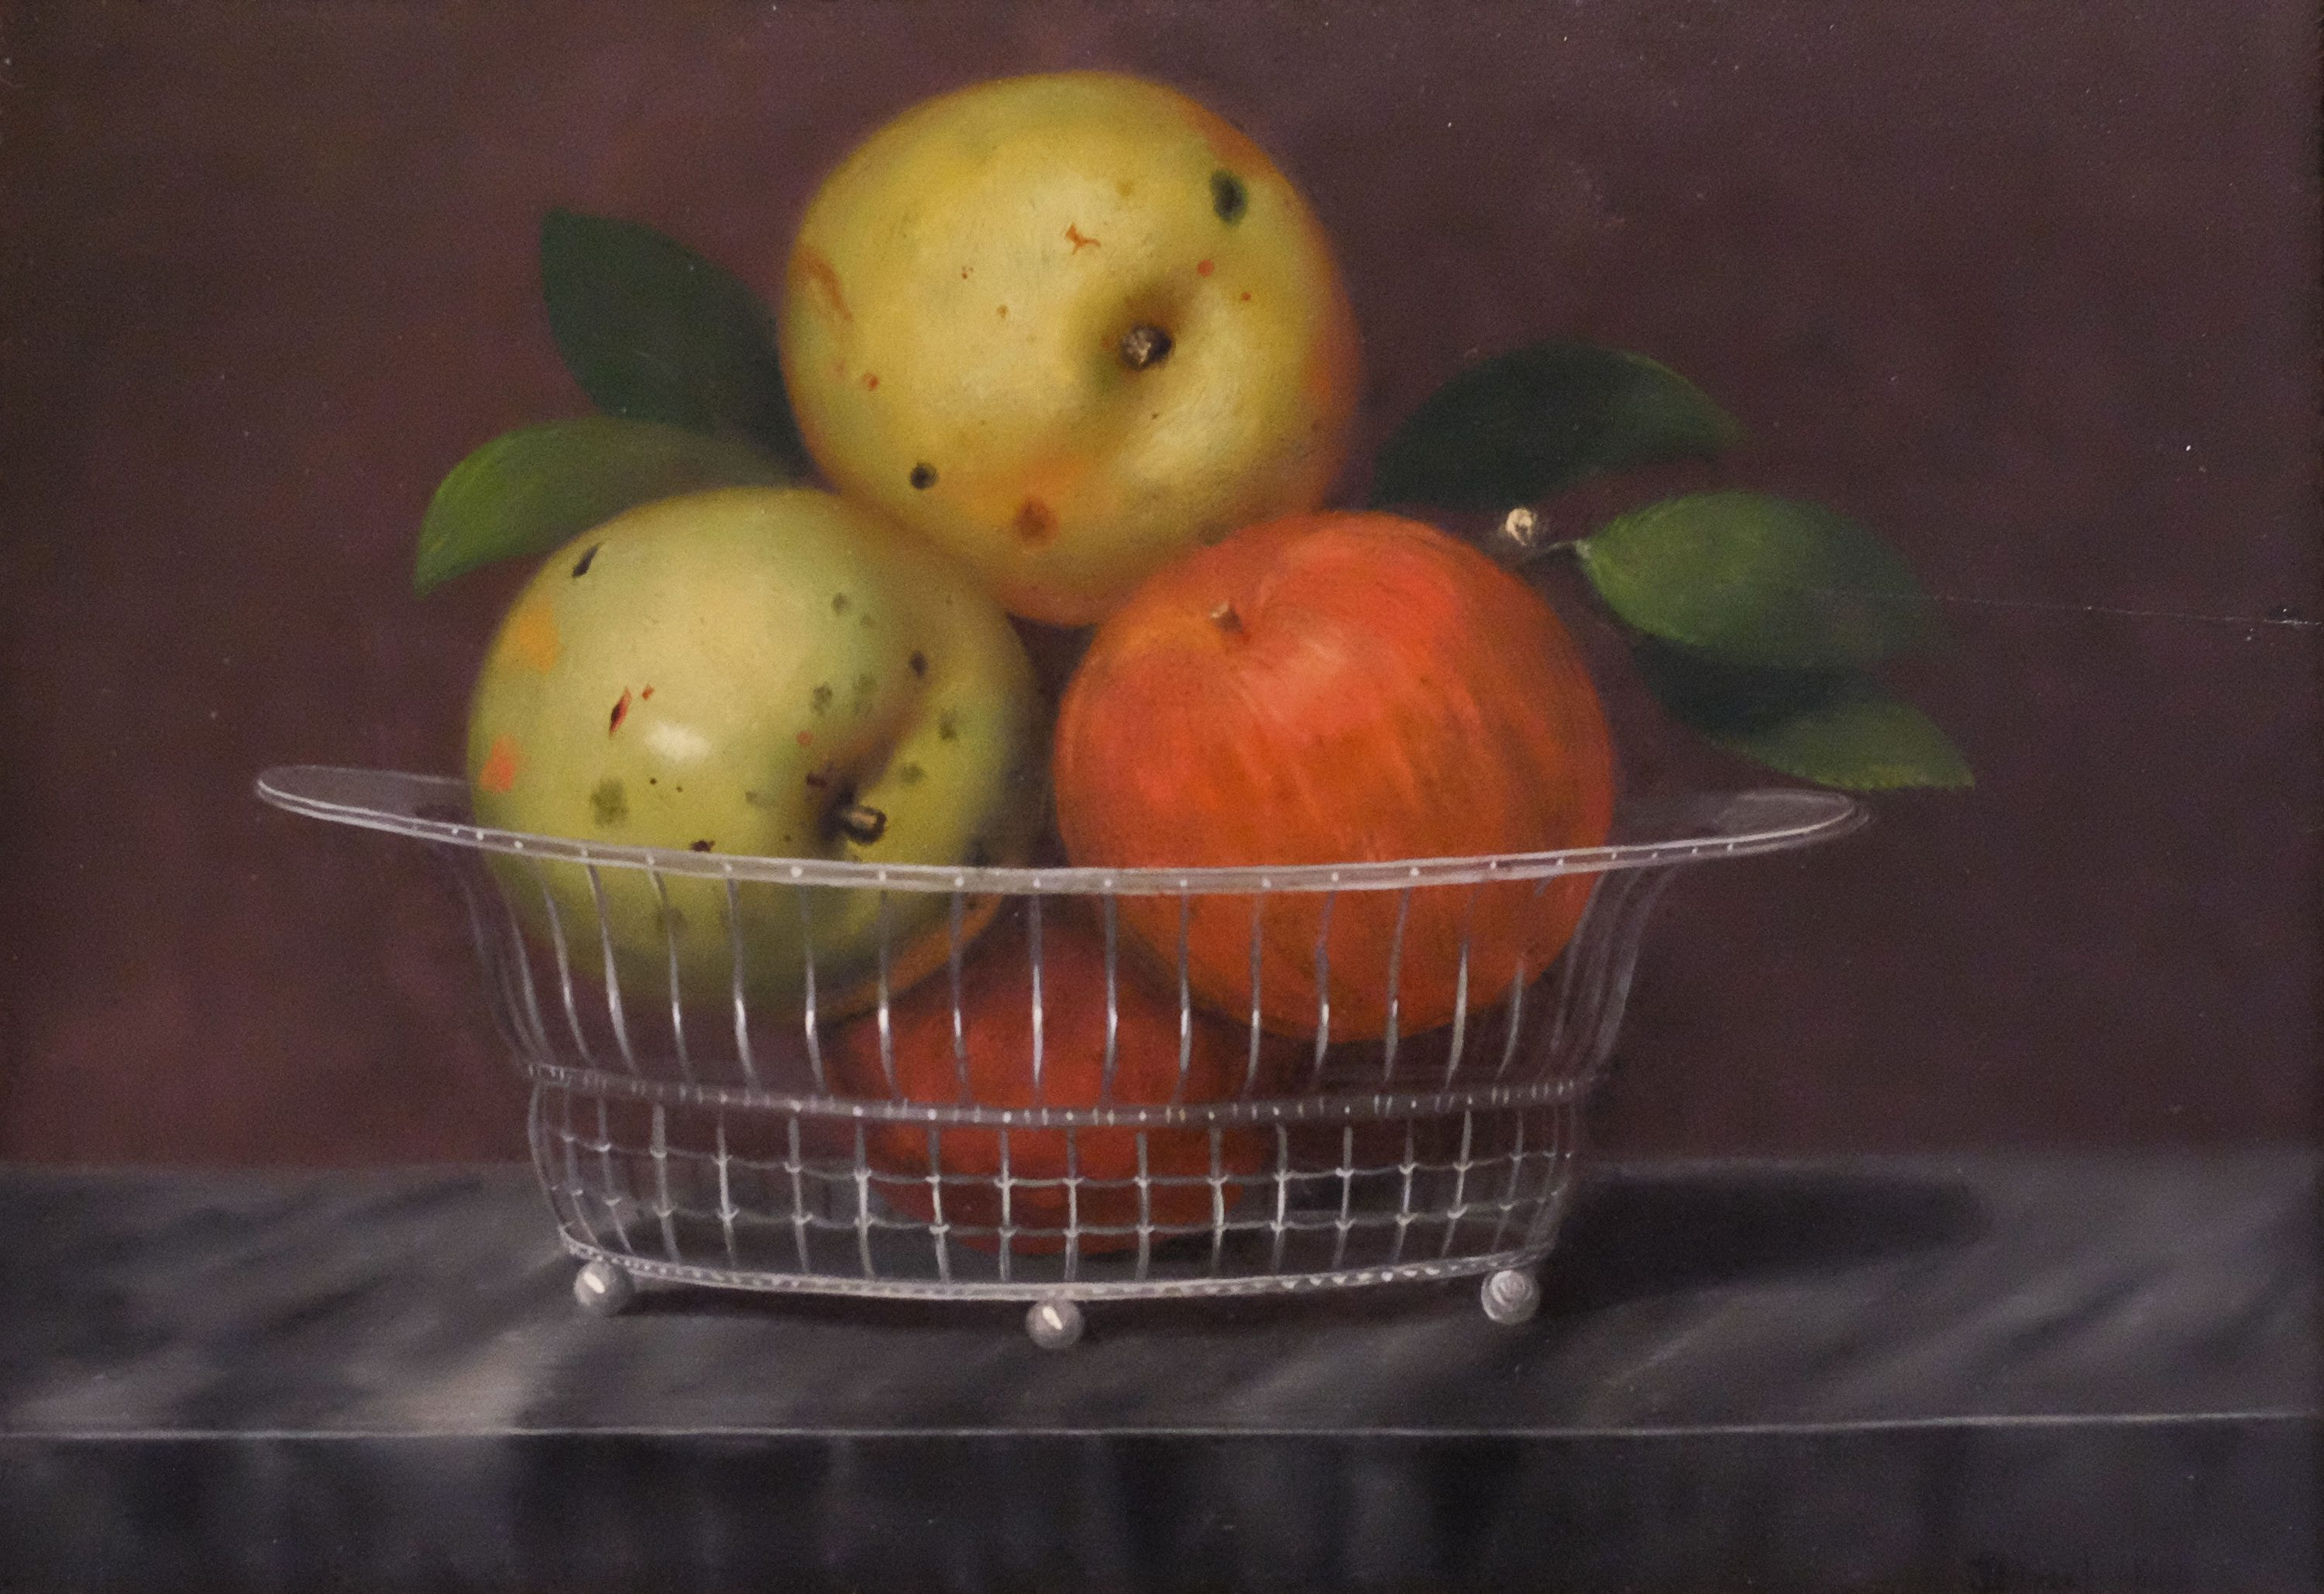 Robert Street, American, 1796–1865. The Basket of Apples, 1818. Oil on board, 10 x 14 in. Gift of Viola E. Bray Charitable Trust Fund Via Mr. and Mrs. William L. Richards, 1964.4 April 30